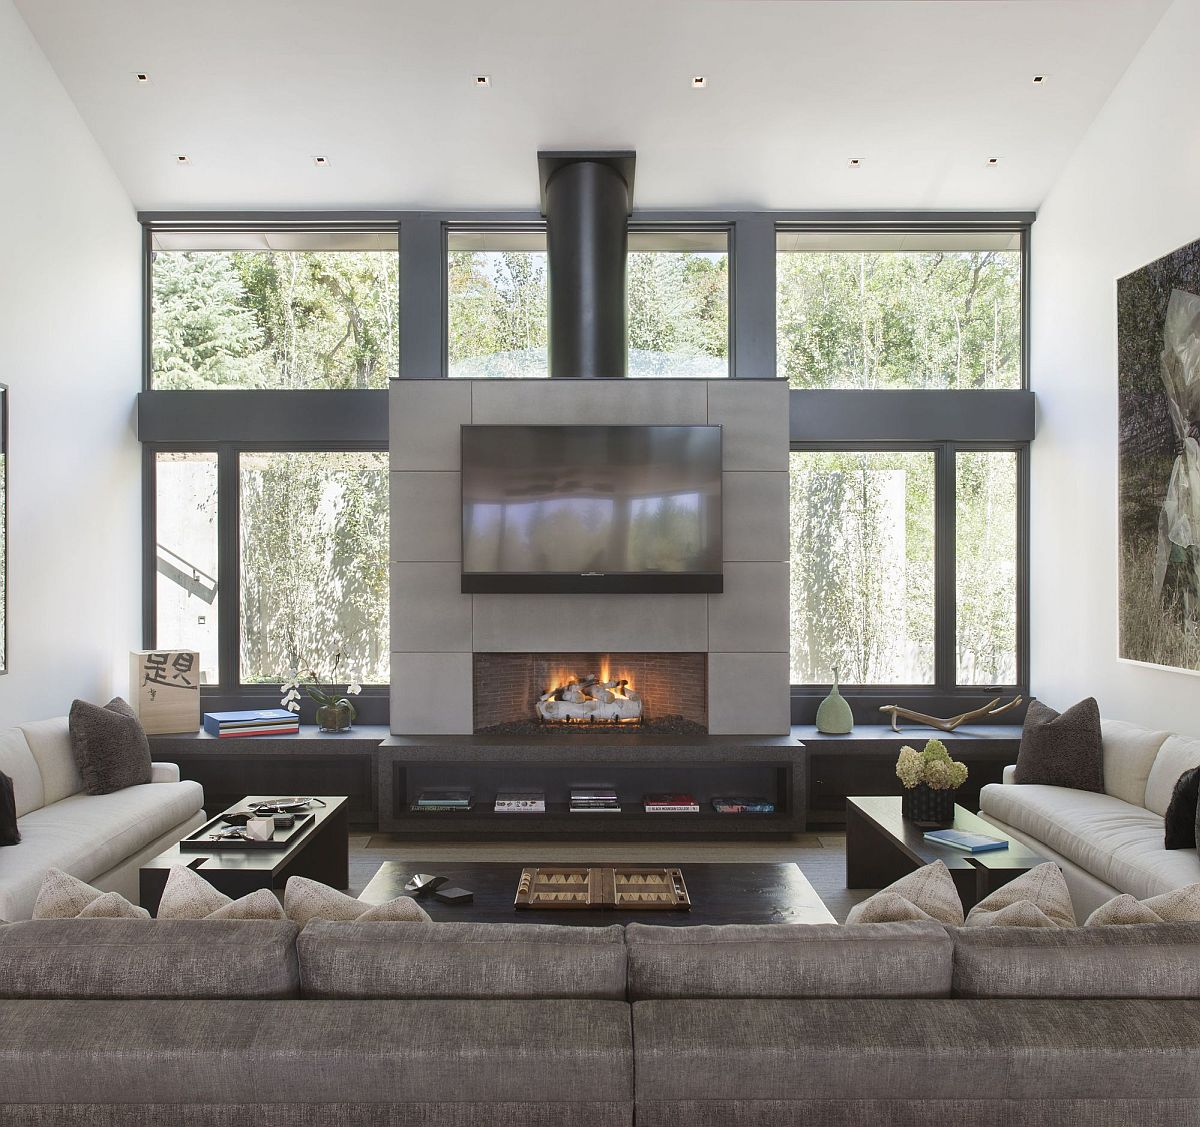 Fireplace-sits-at-the-heart-of-the-contemporary-living-room-with-comfortable-couches-all-around-20035